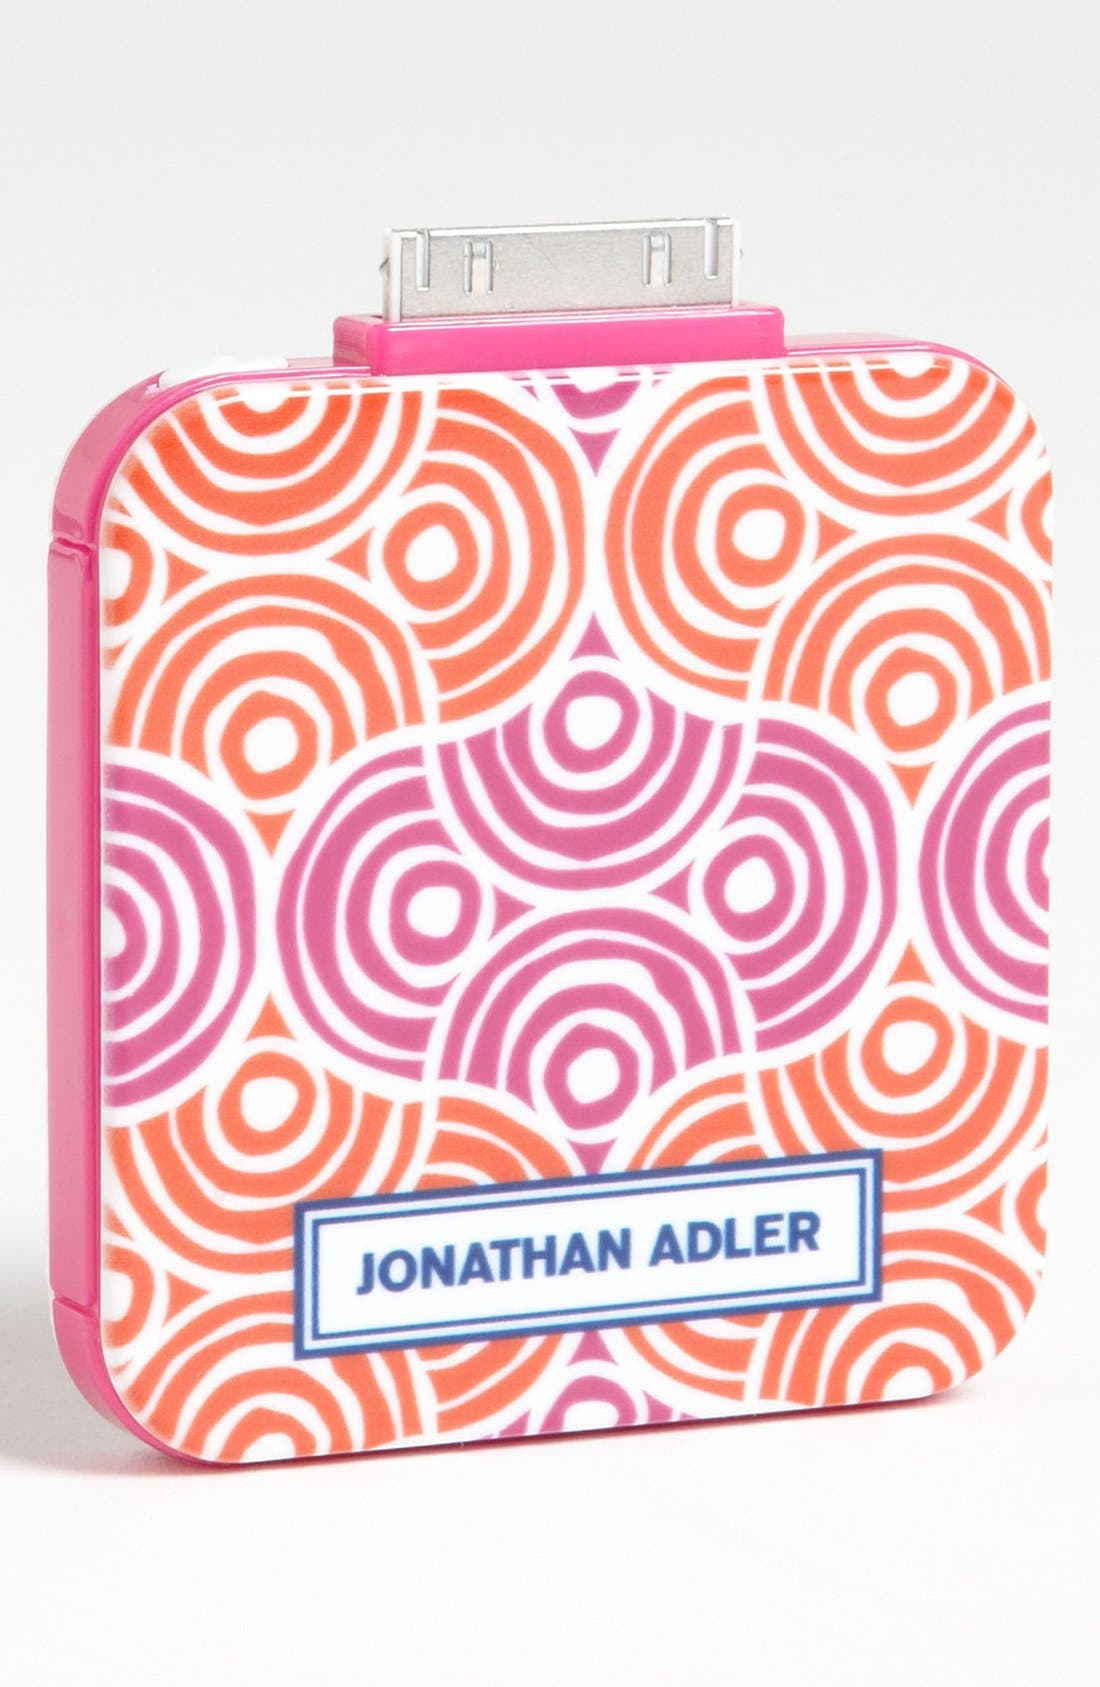 Alternate Image 1 Selected - Jonathan Adler 'On The Go' iPod & iPhone 4/4S Charger